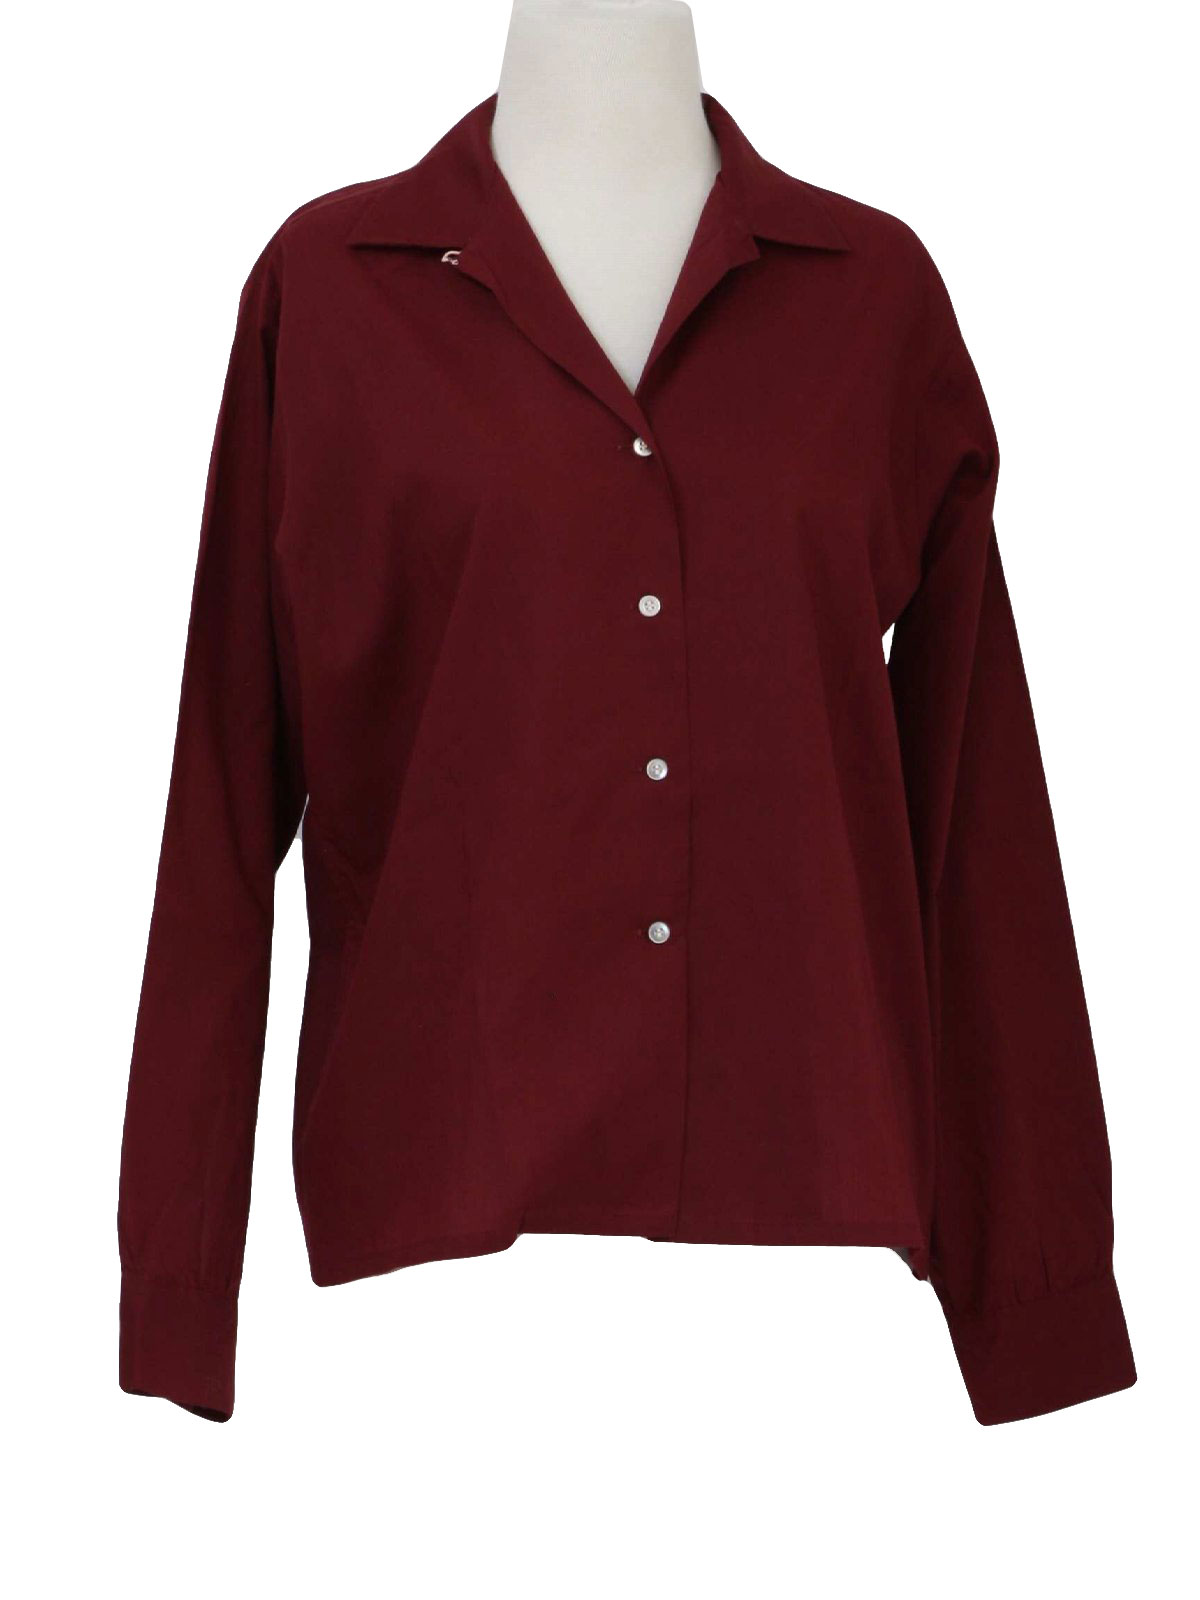 Vintage 1960's Shirt: Early 60s -Jayson Classics- Womens burgundy ...